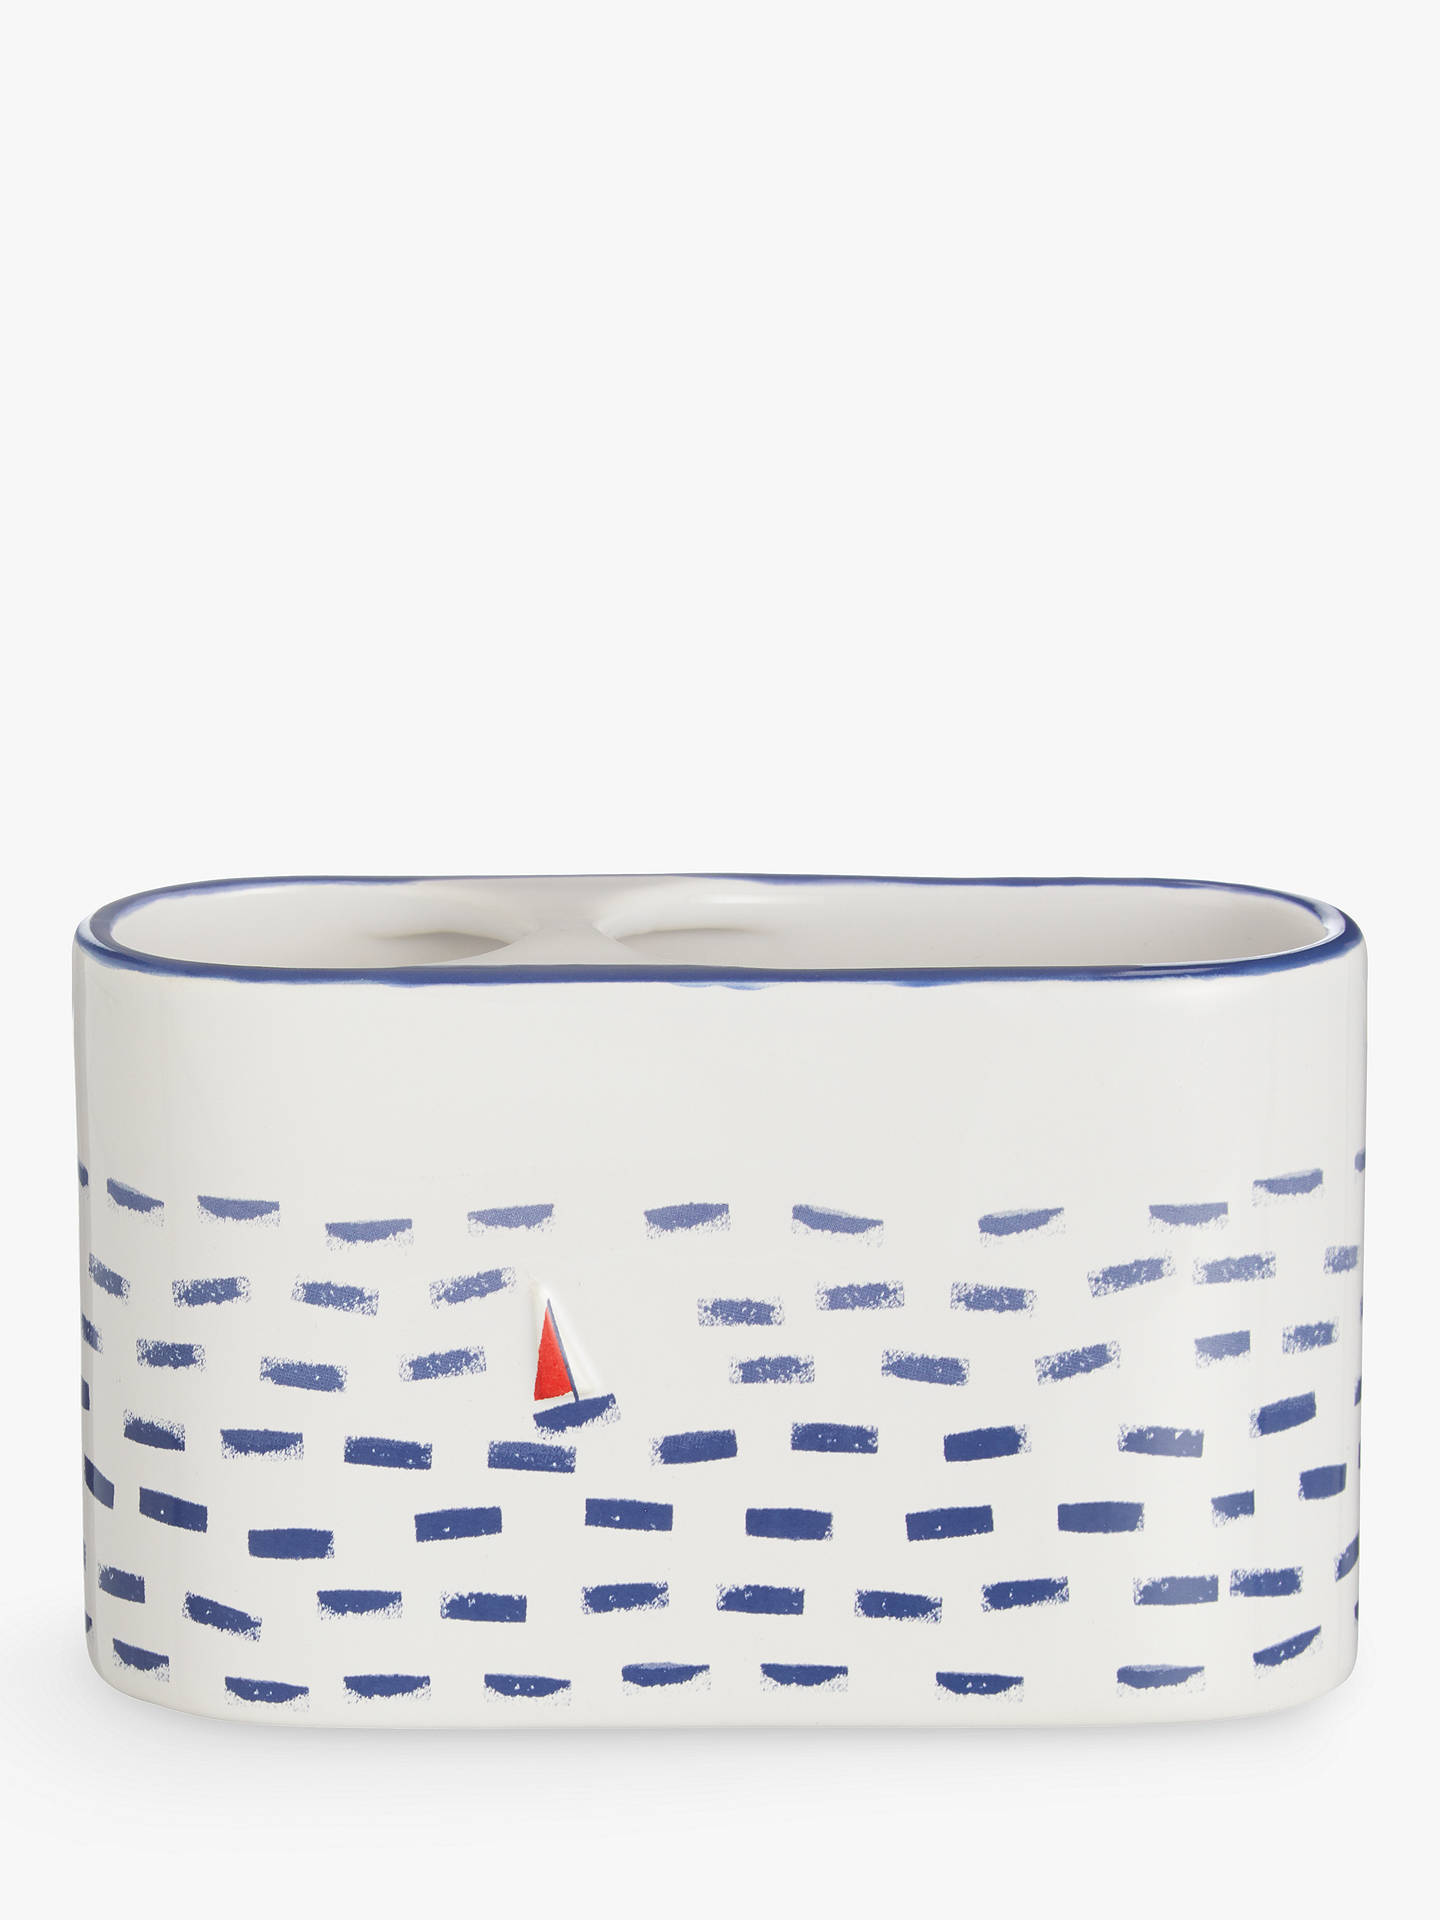 BuyJohn Lewis & Partners Coastal Lost at Sea Basin Toothbrush Caddy, Multi Online at johnlewis.com